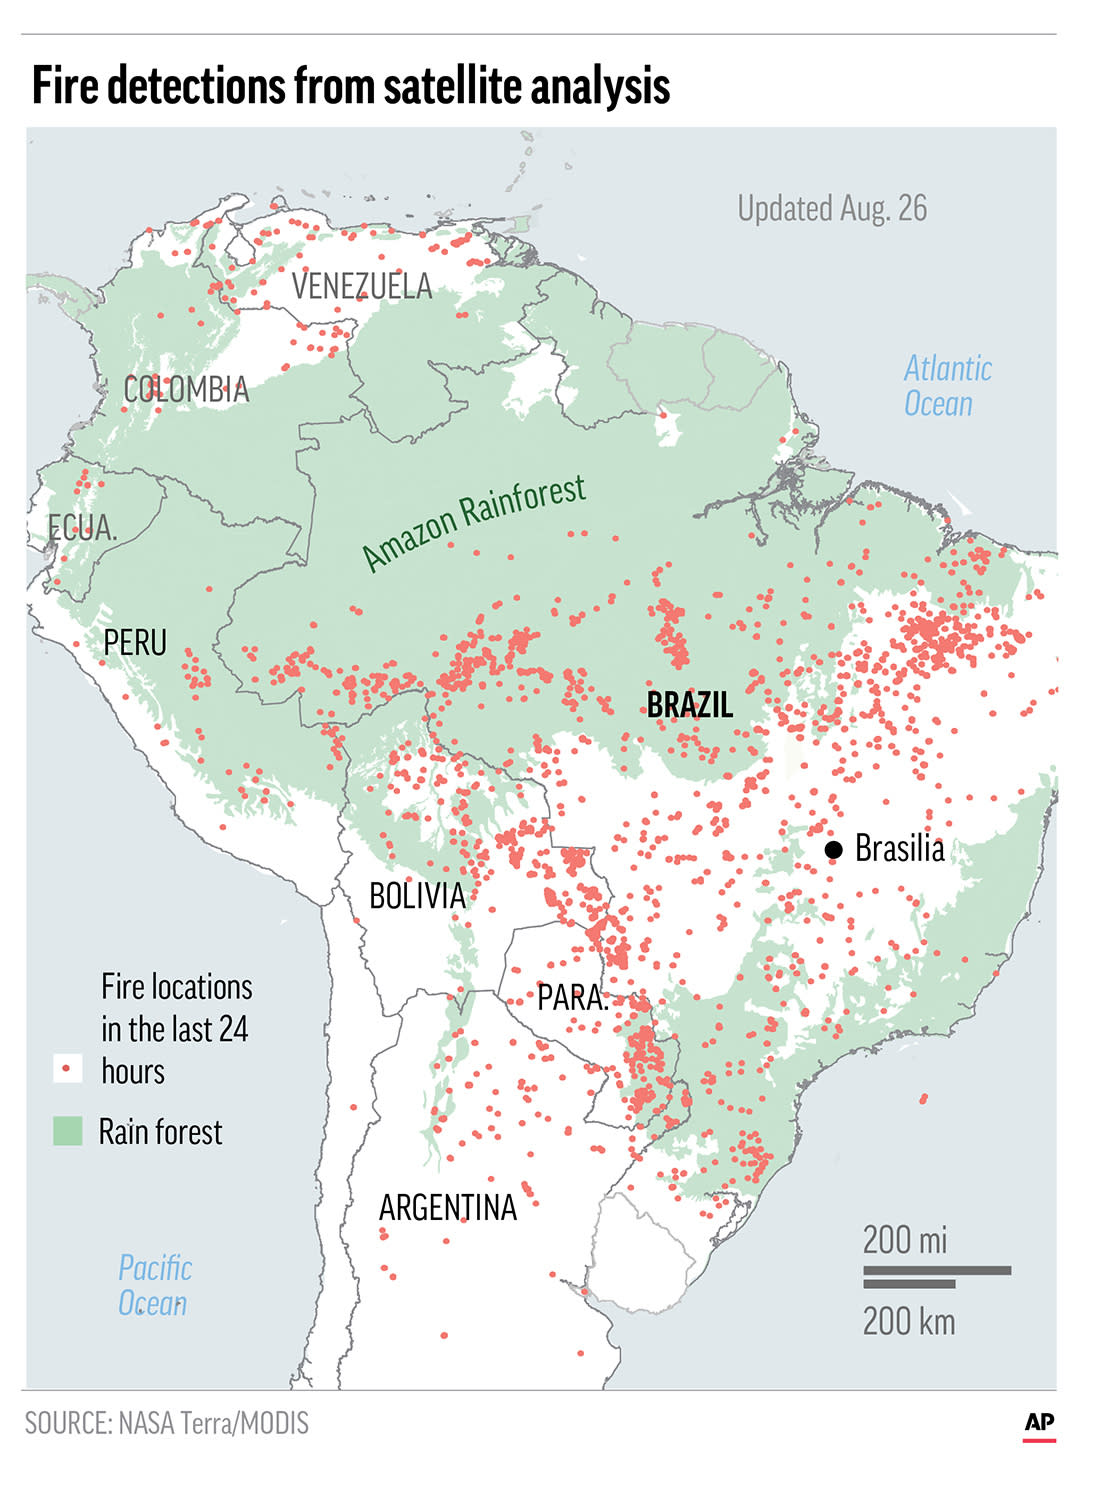 Leaders of the Group of Seven nations say they're preparing to help Brazil fight the fires burning across the Amazon rainforest and repair the damage.;